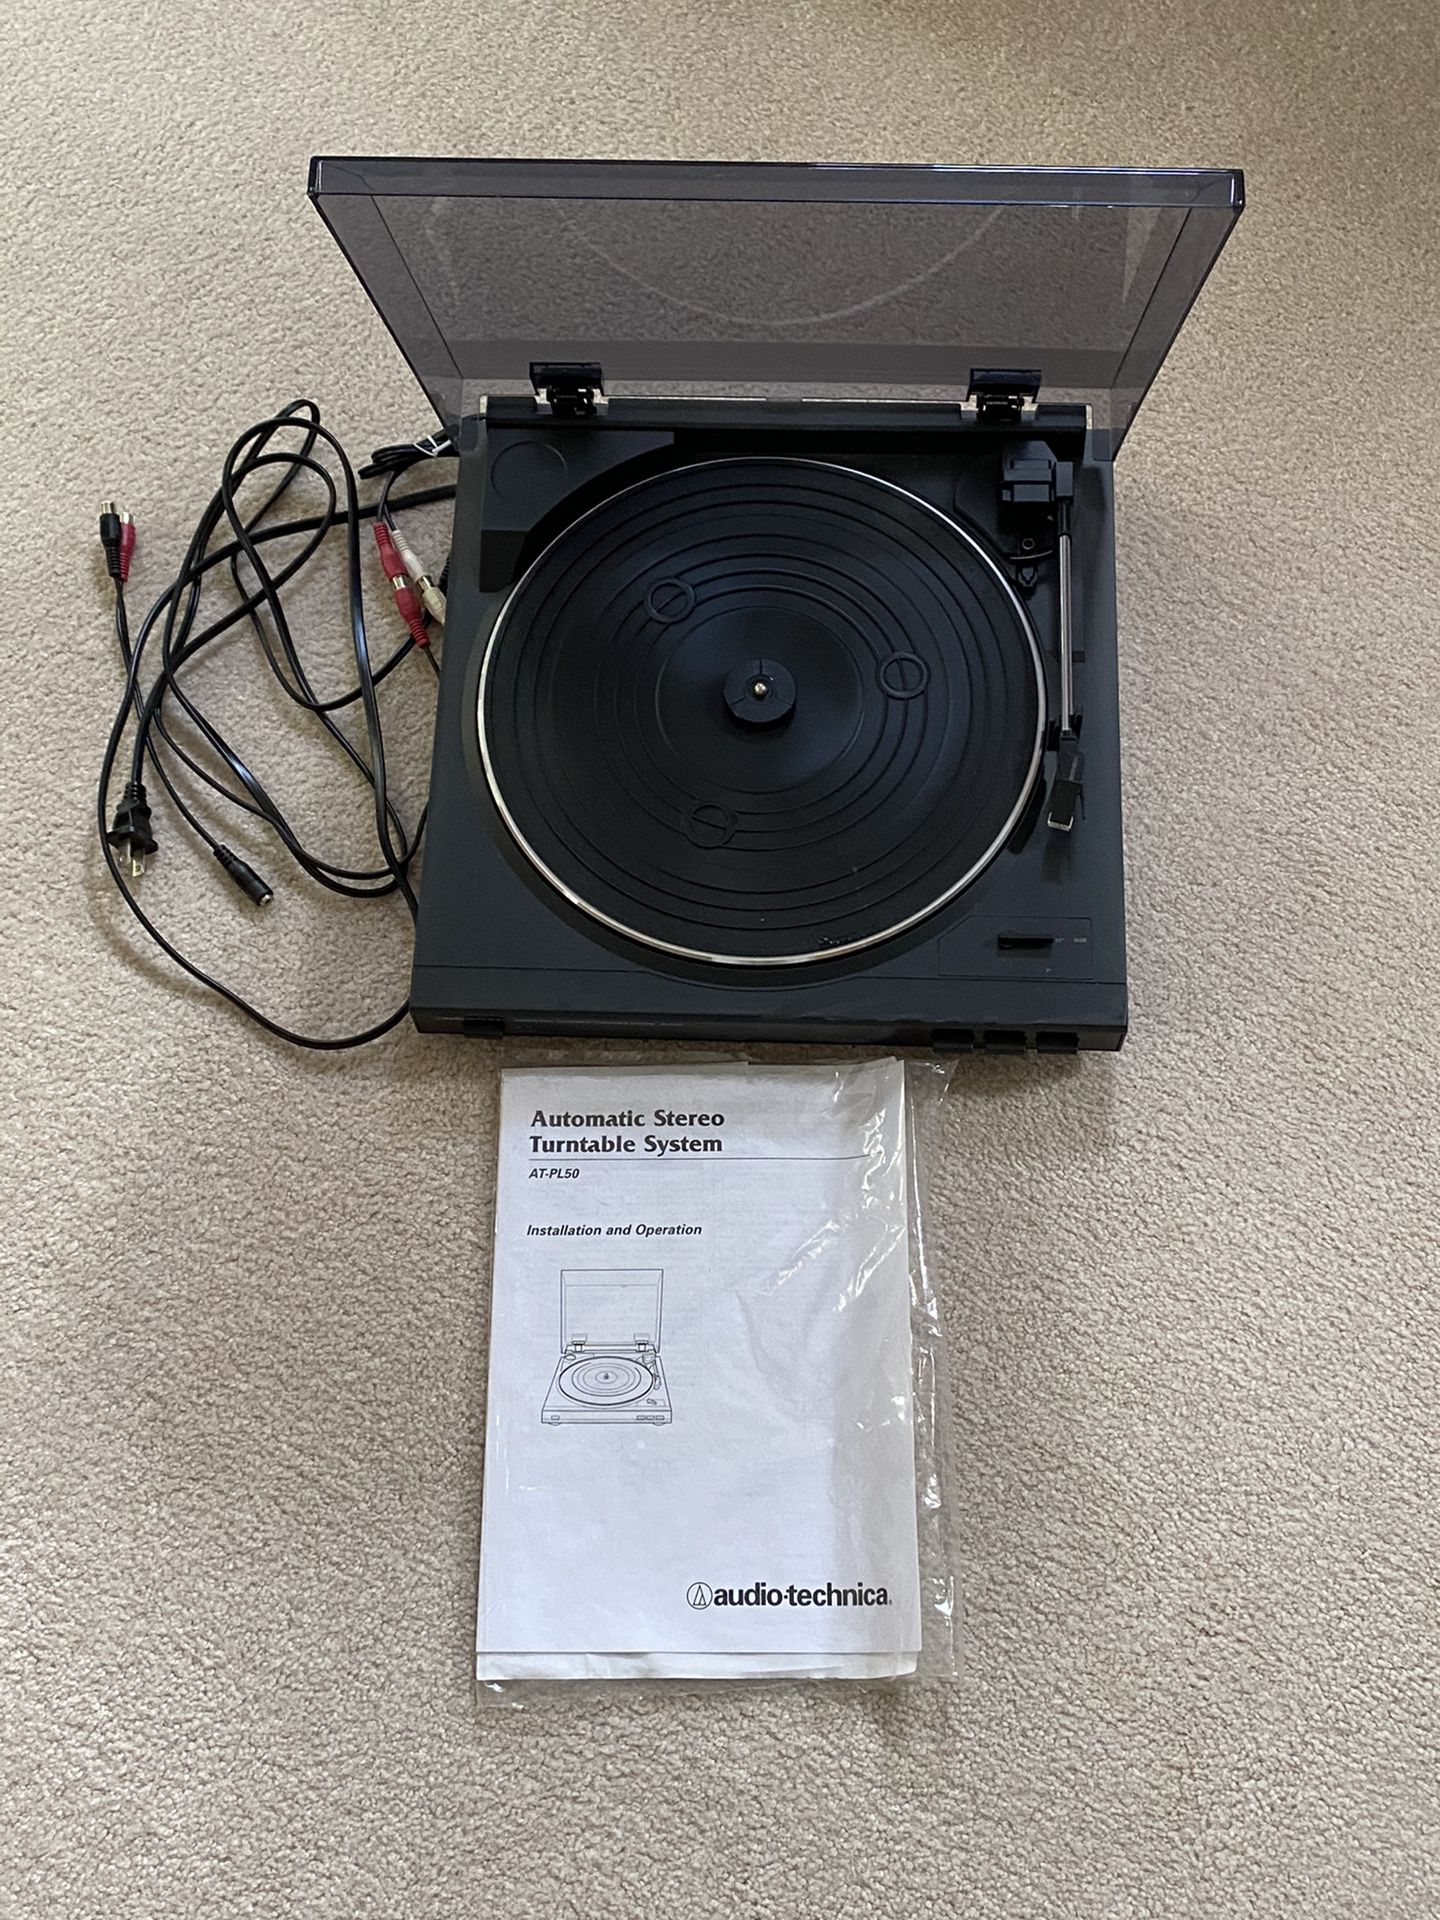 Turntable and Analog To Digial Convertor